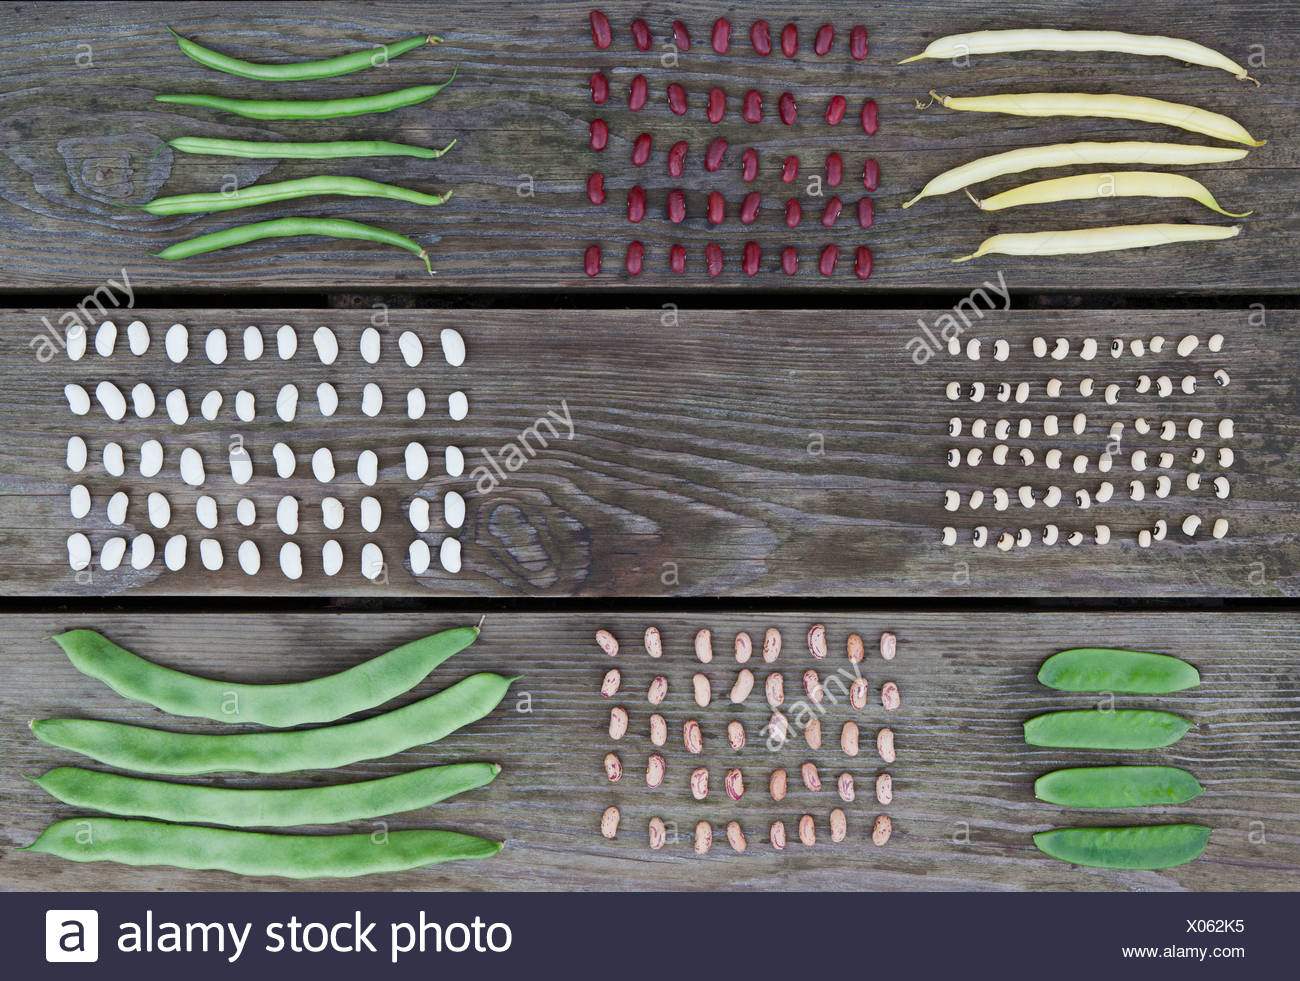 Neatly arranged legumes on wooden table - Stock Image